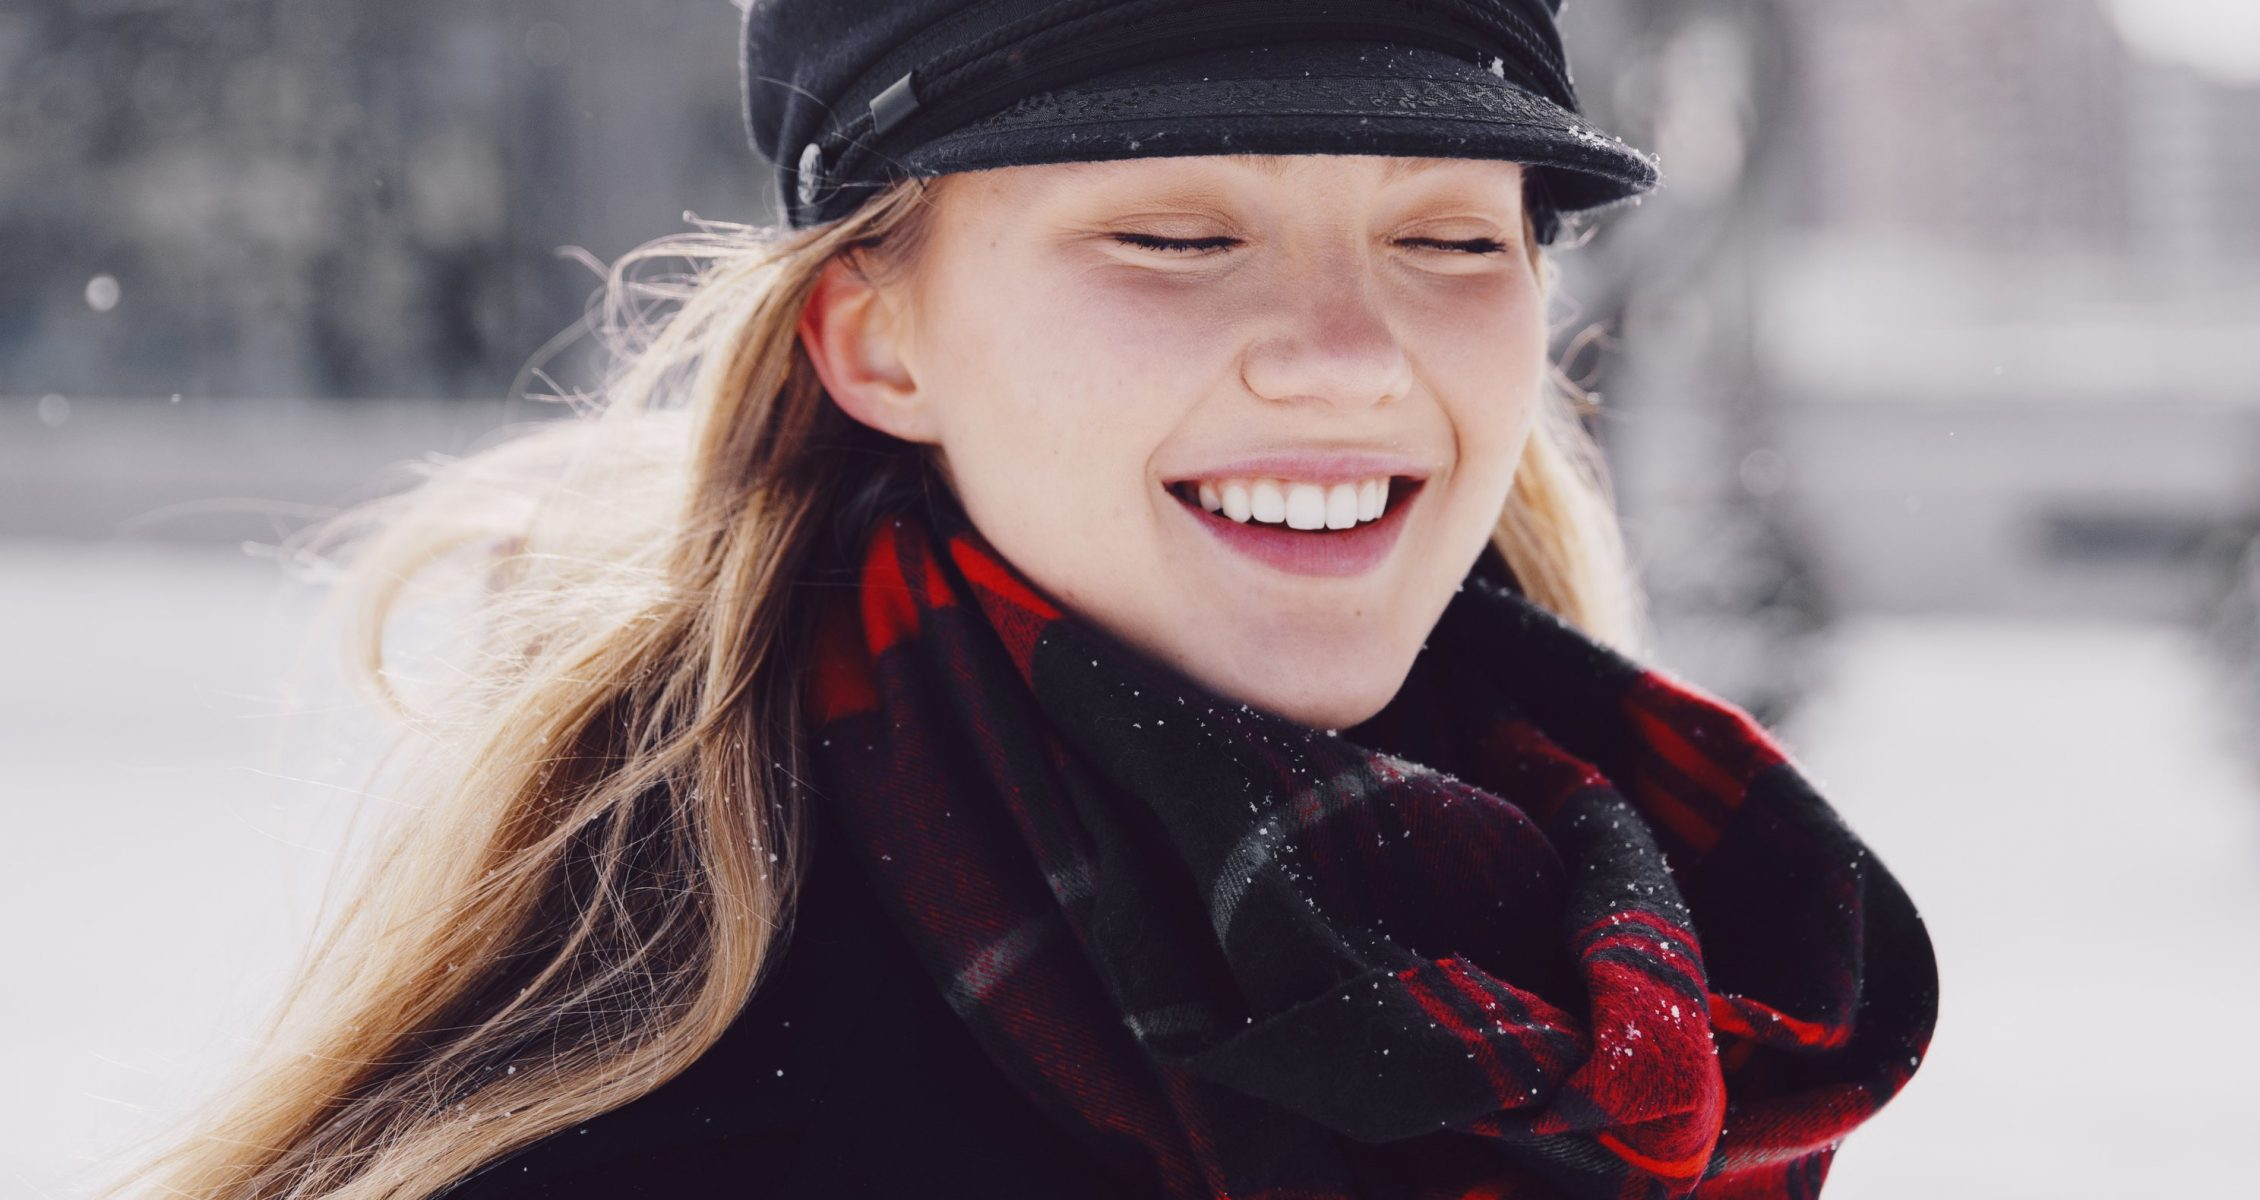 A blonde woman is smiling wearing a black hat, black coat, and red plaid scarf